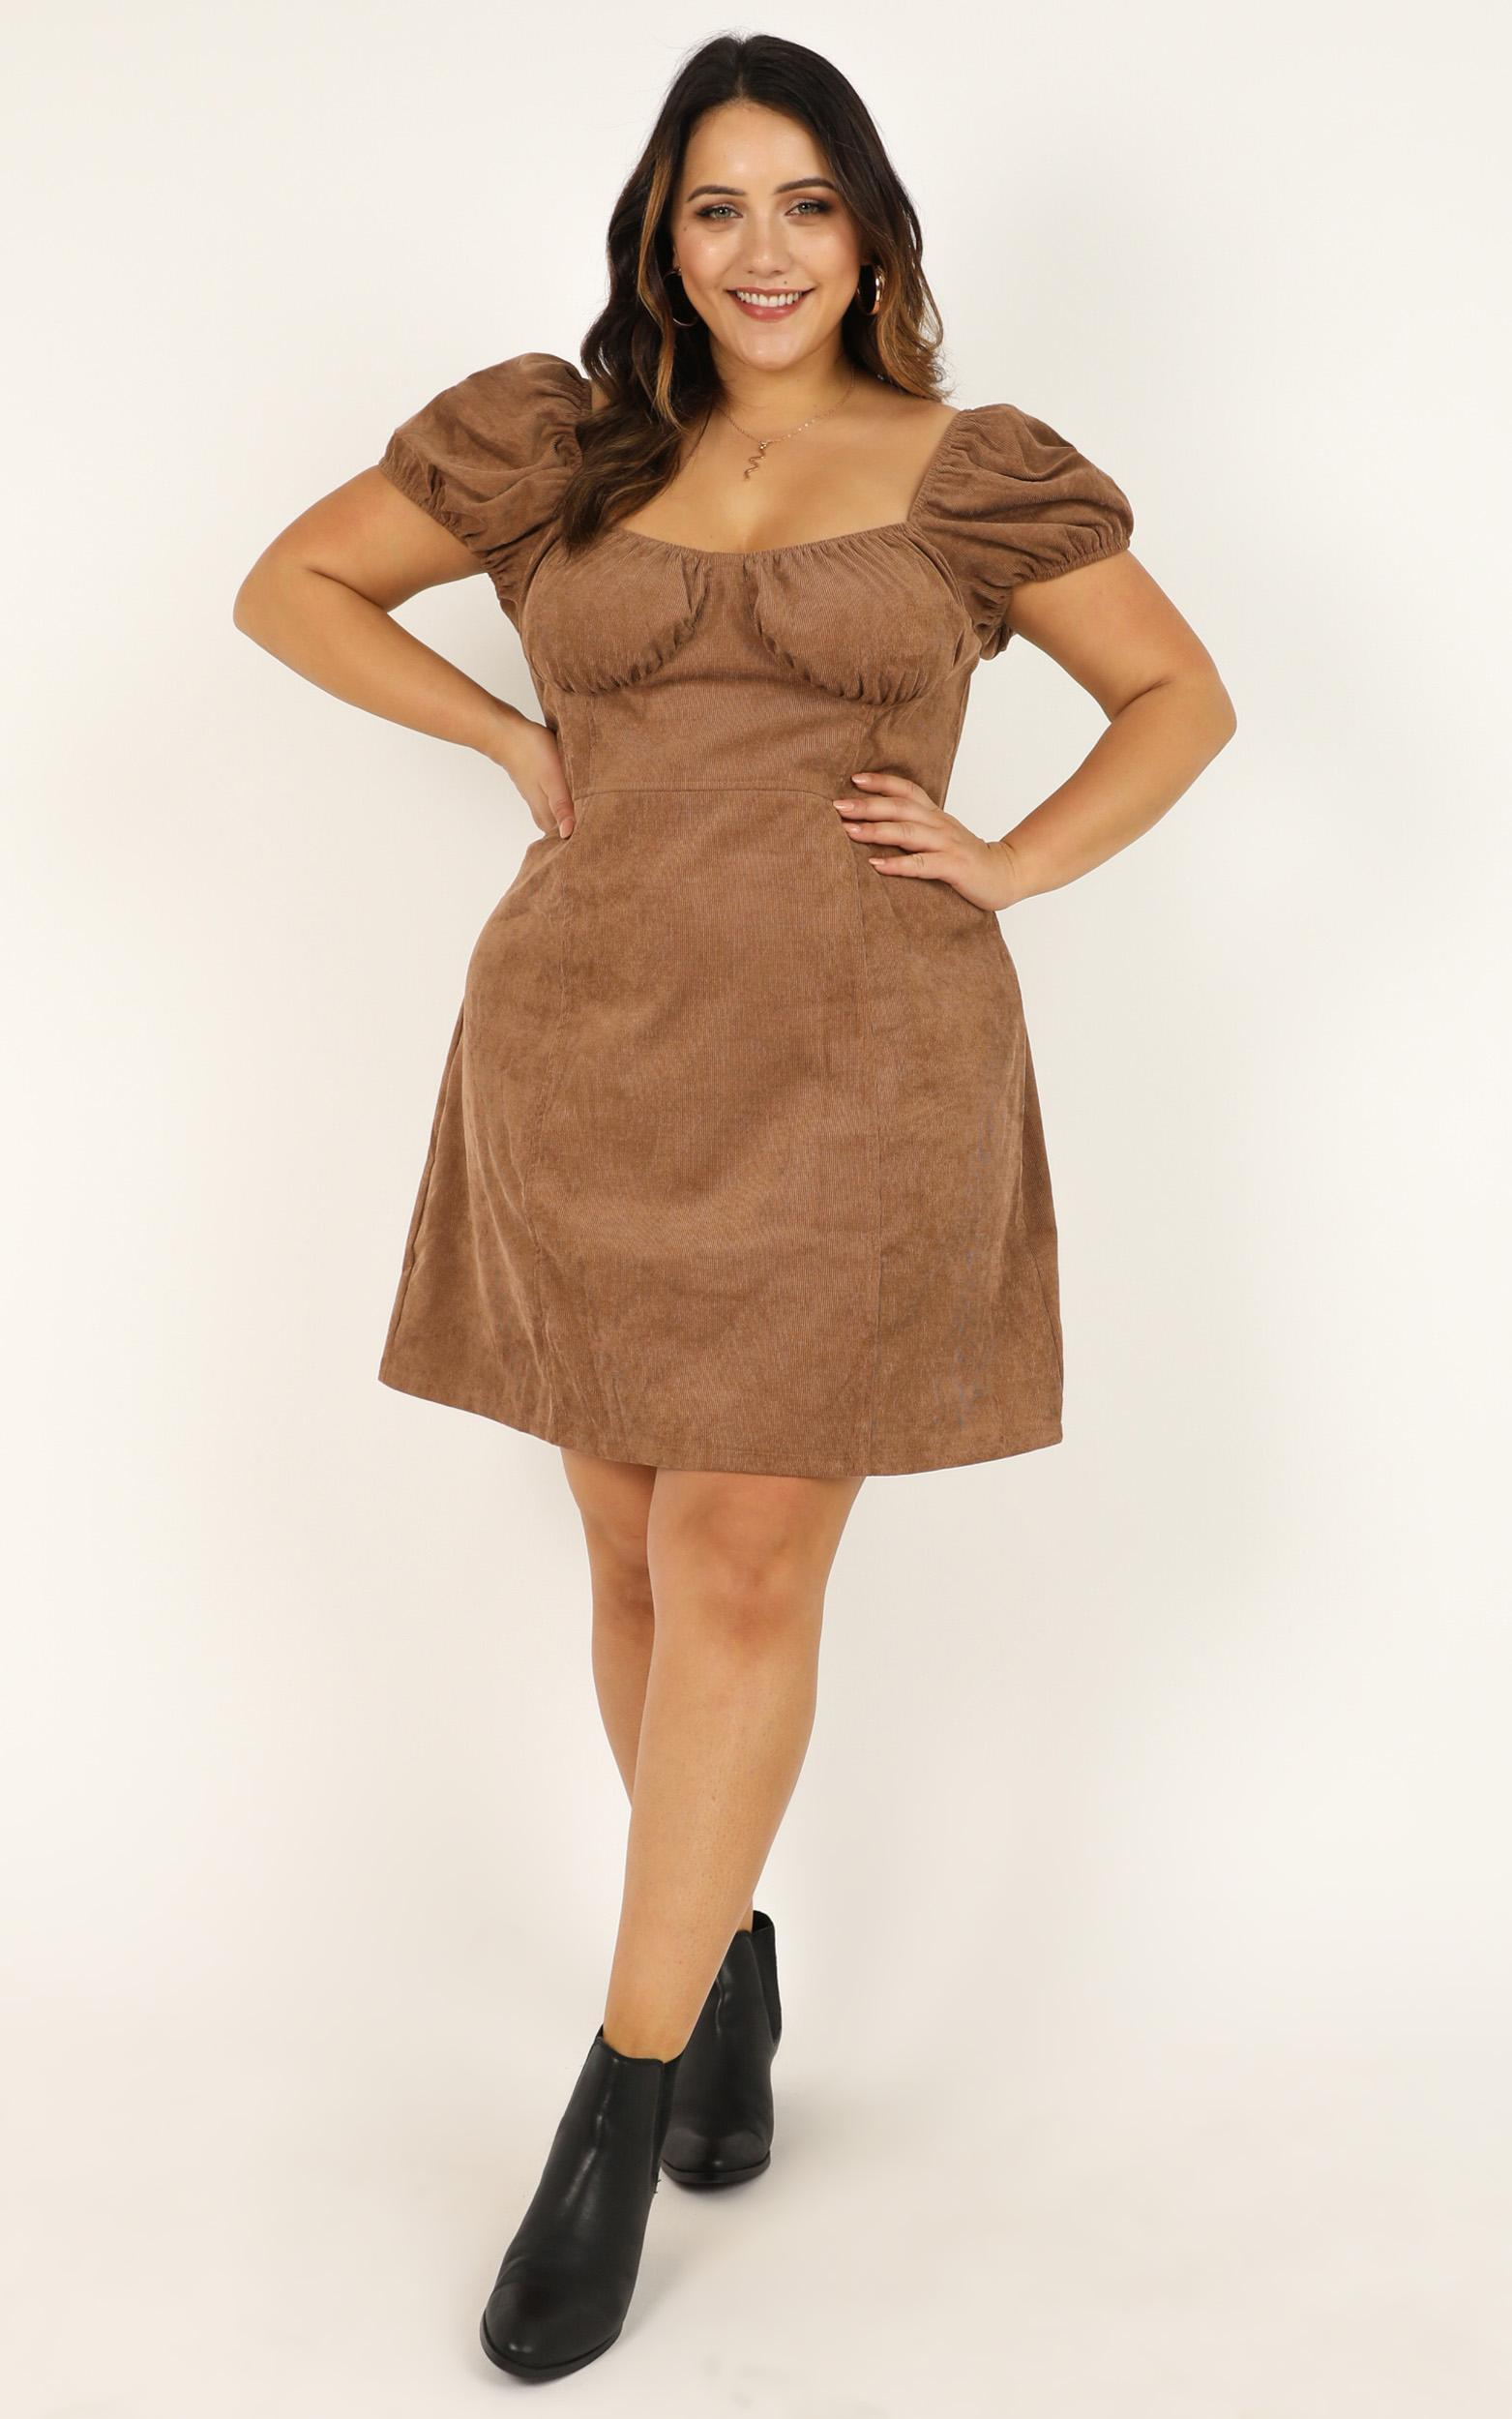 Last Standing Dress in tan cord - 20 (XXXXL), Tan, hi-res image number null